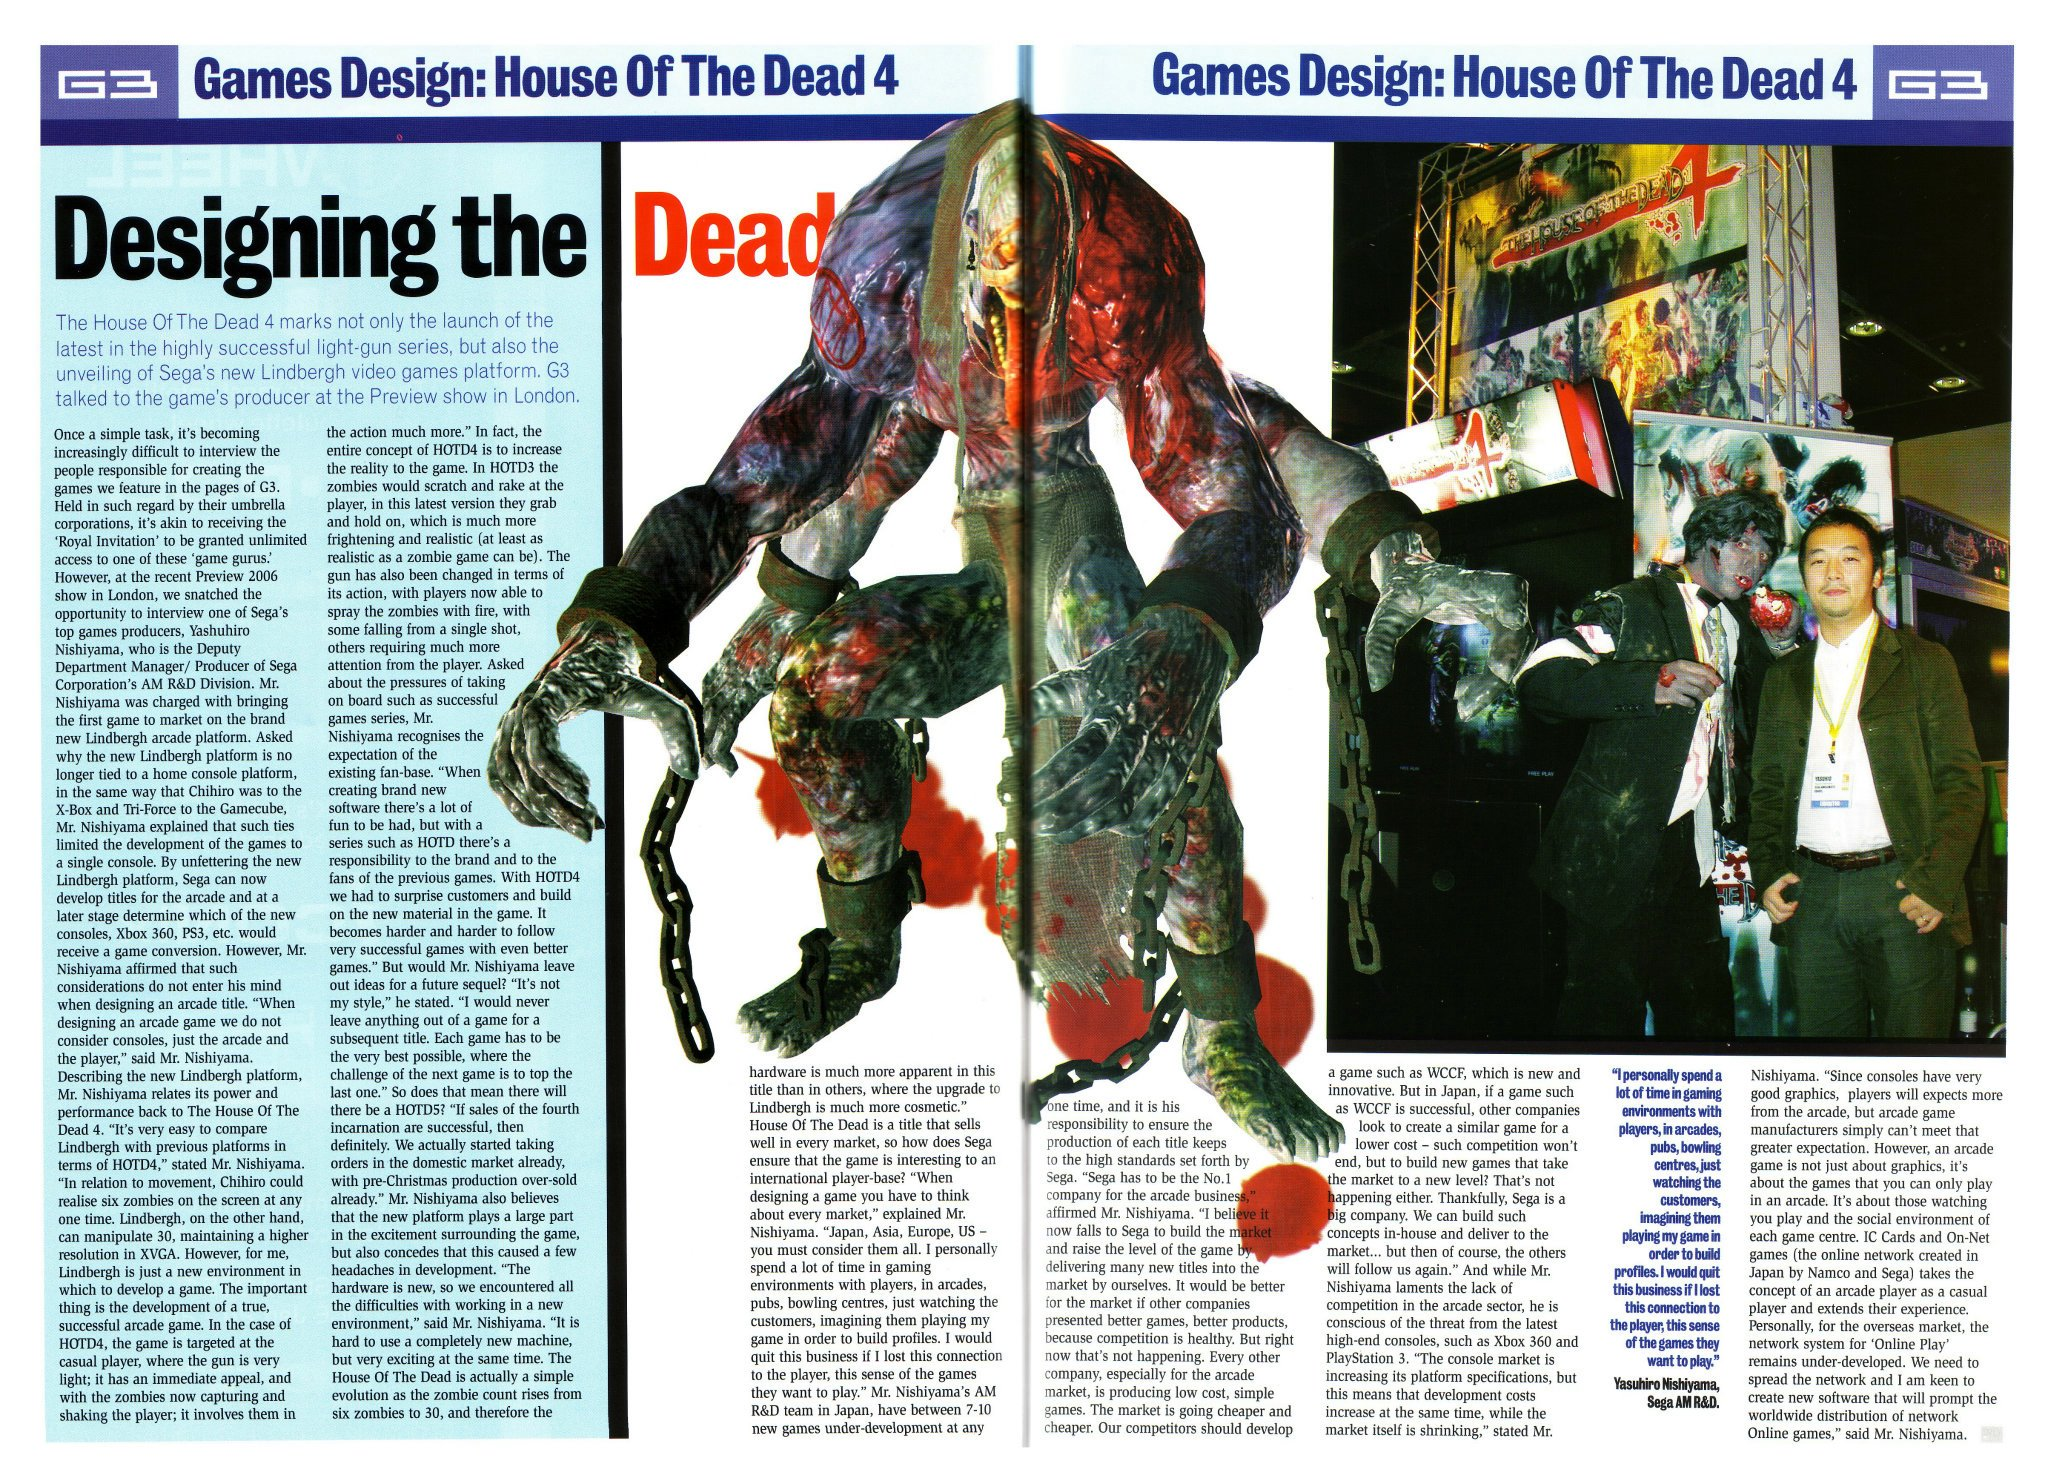 Sega Amusements Posts The House Of The Dead 4 Arcade Pics And Info From 2005 The Website Of The Dead